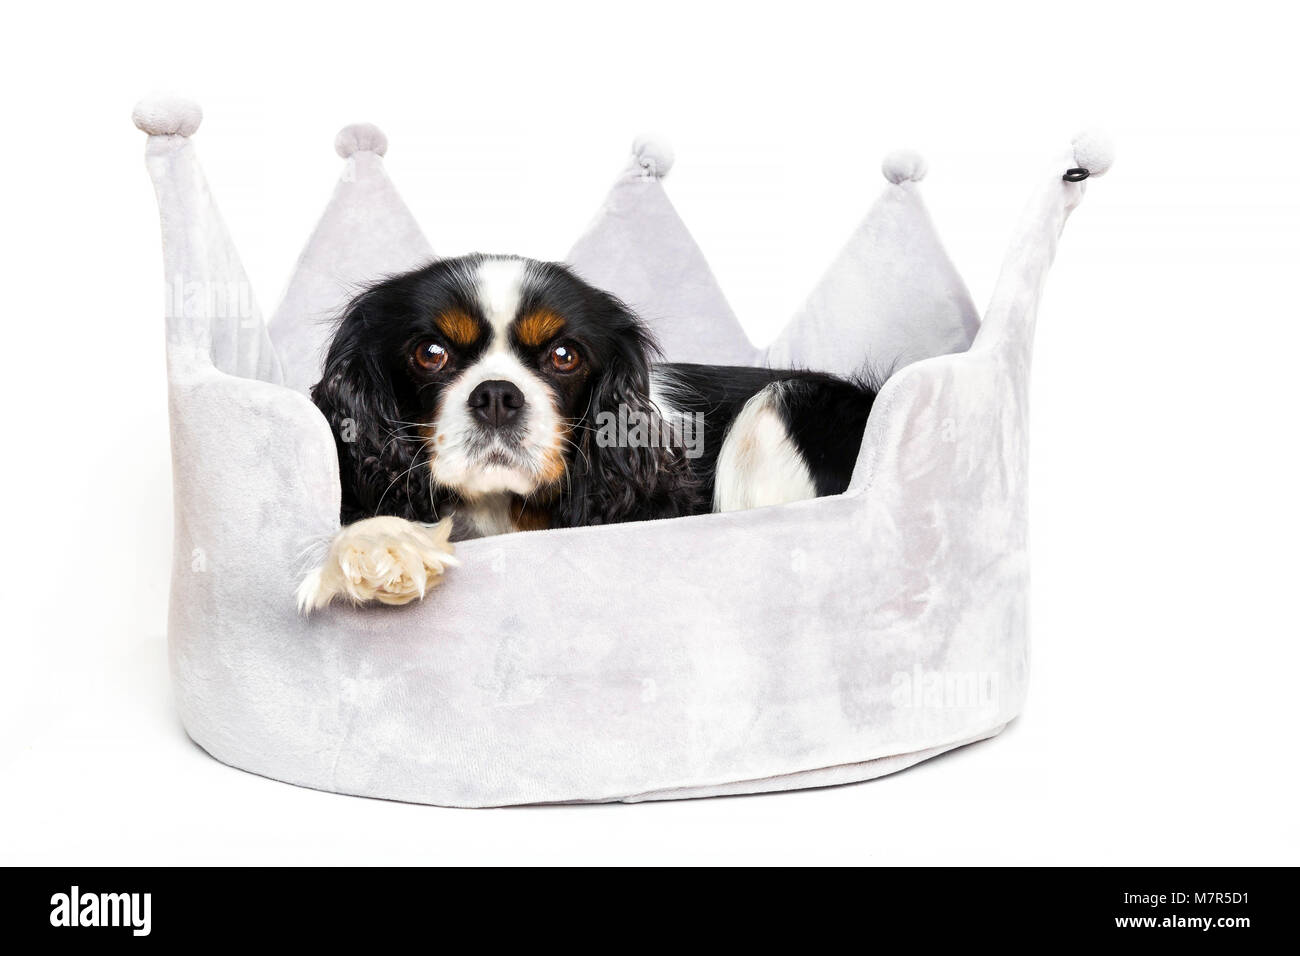 Cute dog resting in comfortable bed - Stock Image